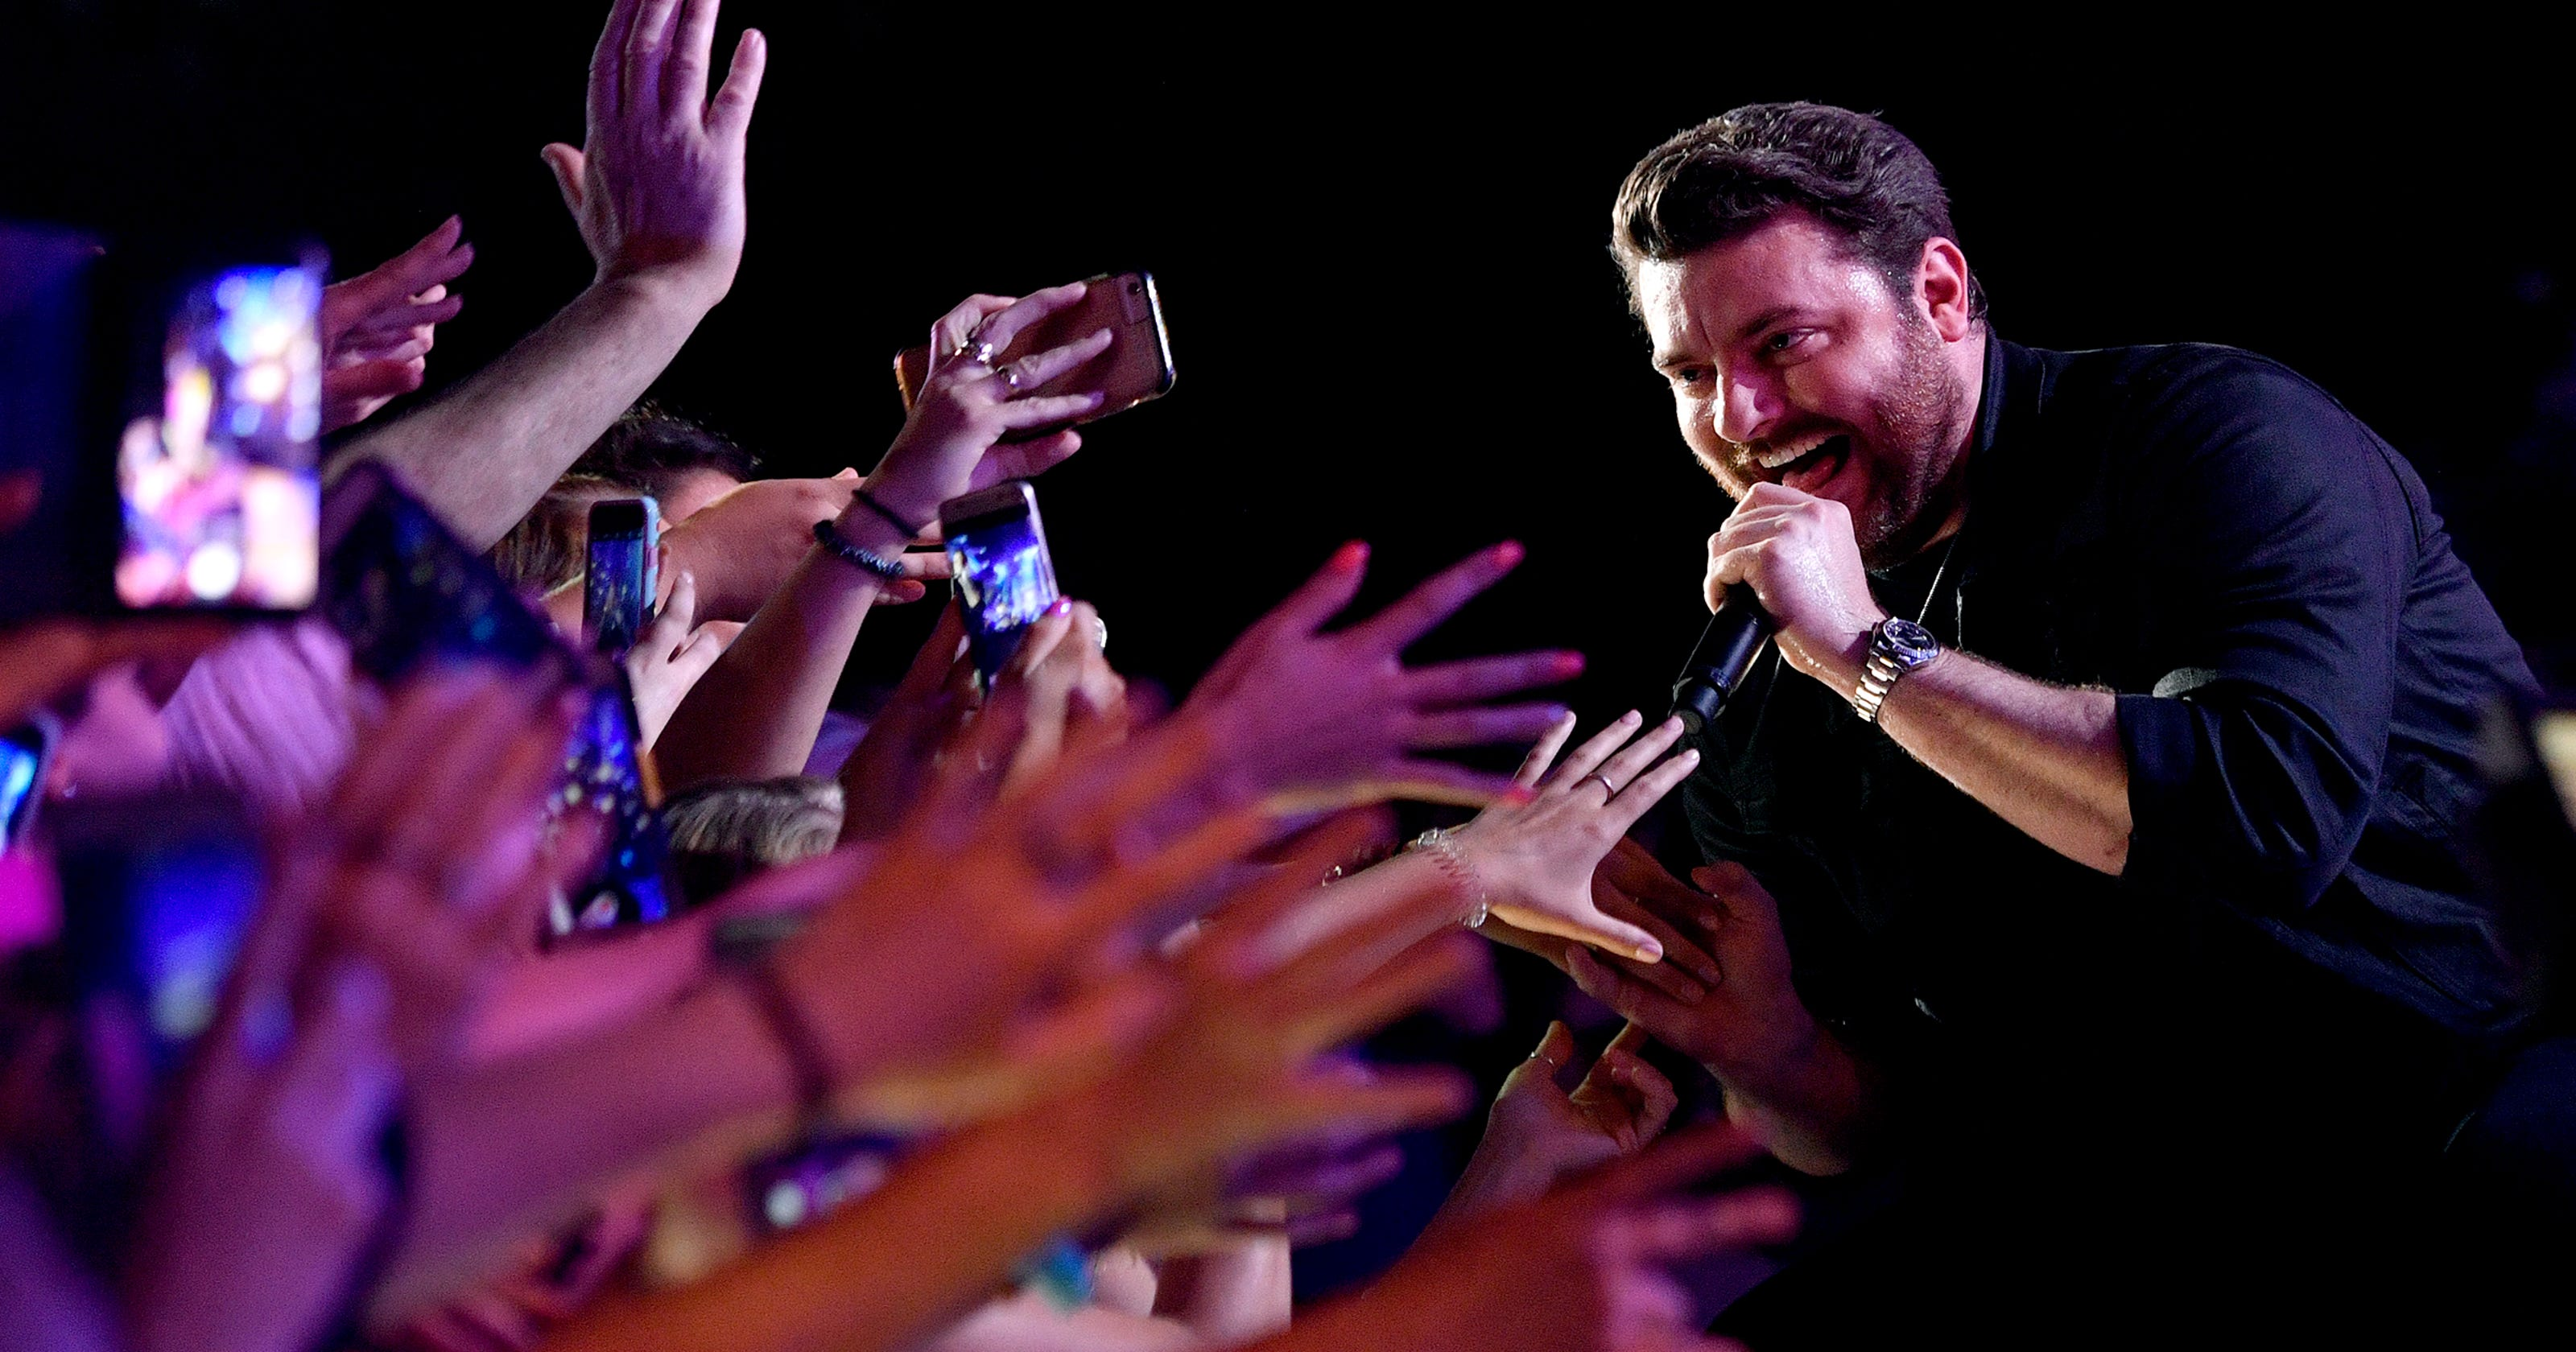 Chris Young to donate $100,000 to Hurricane Harvey relief